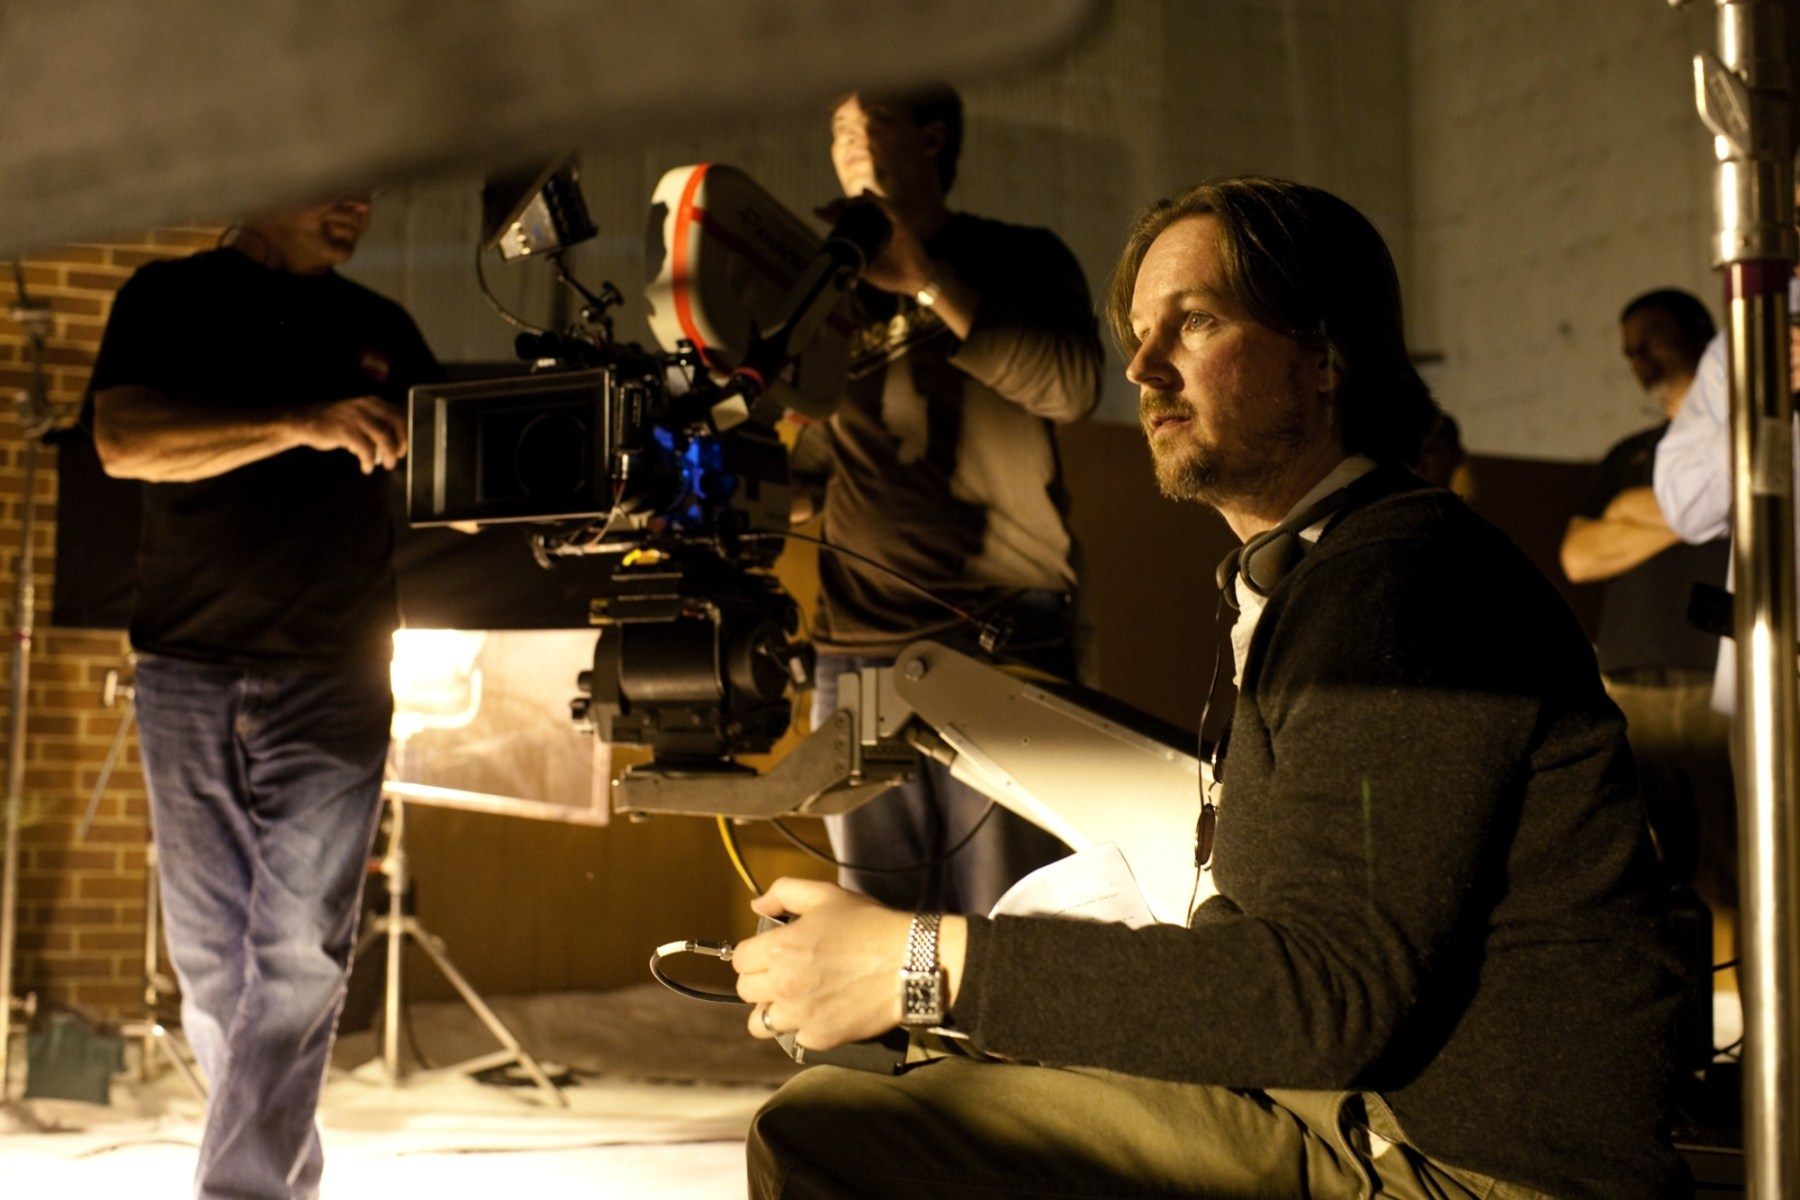 Matt Reeves : Let Me In (2010) Behind the Scenes